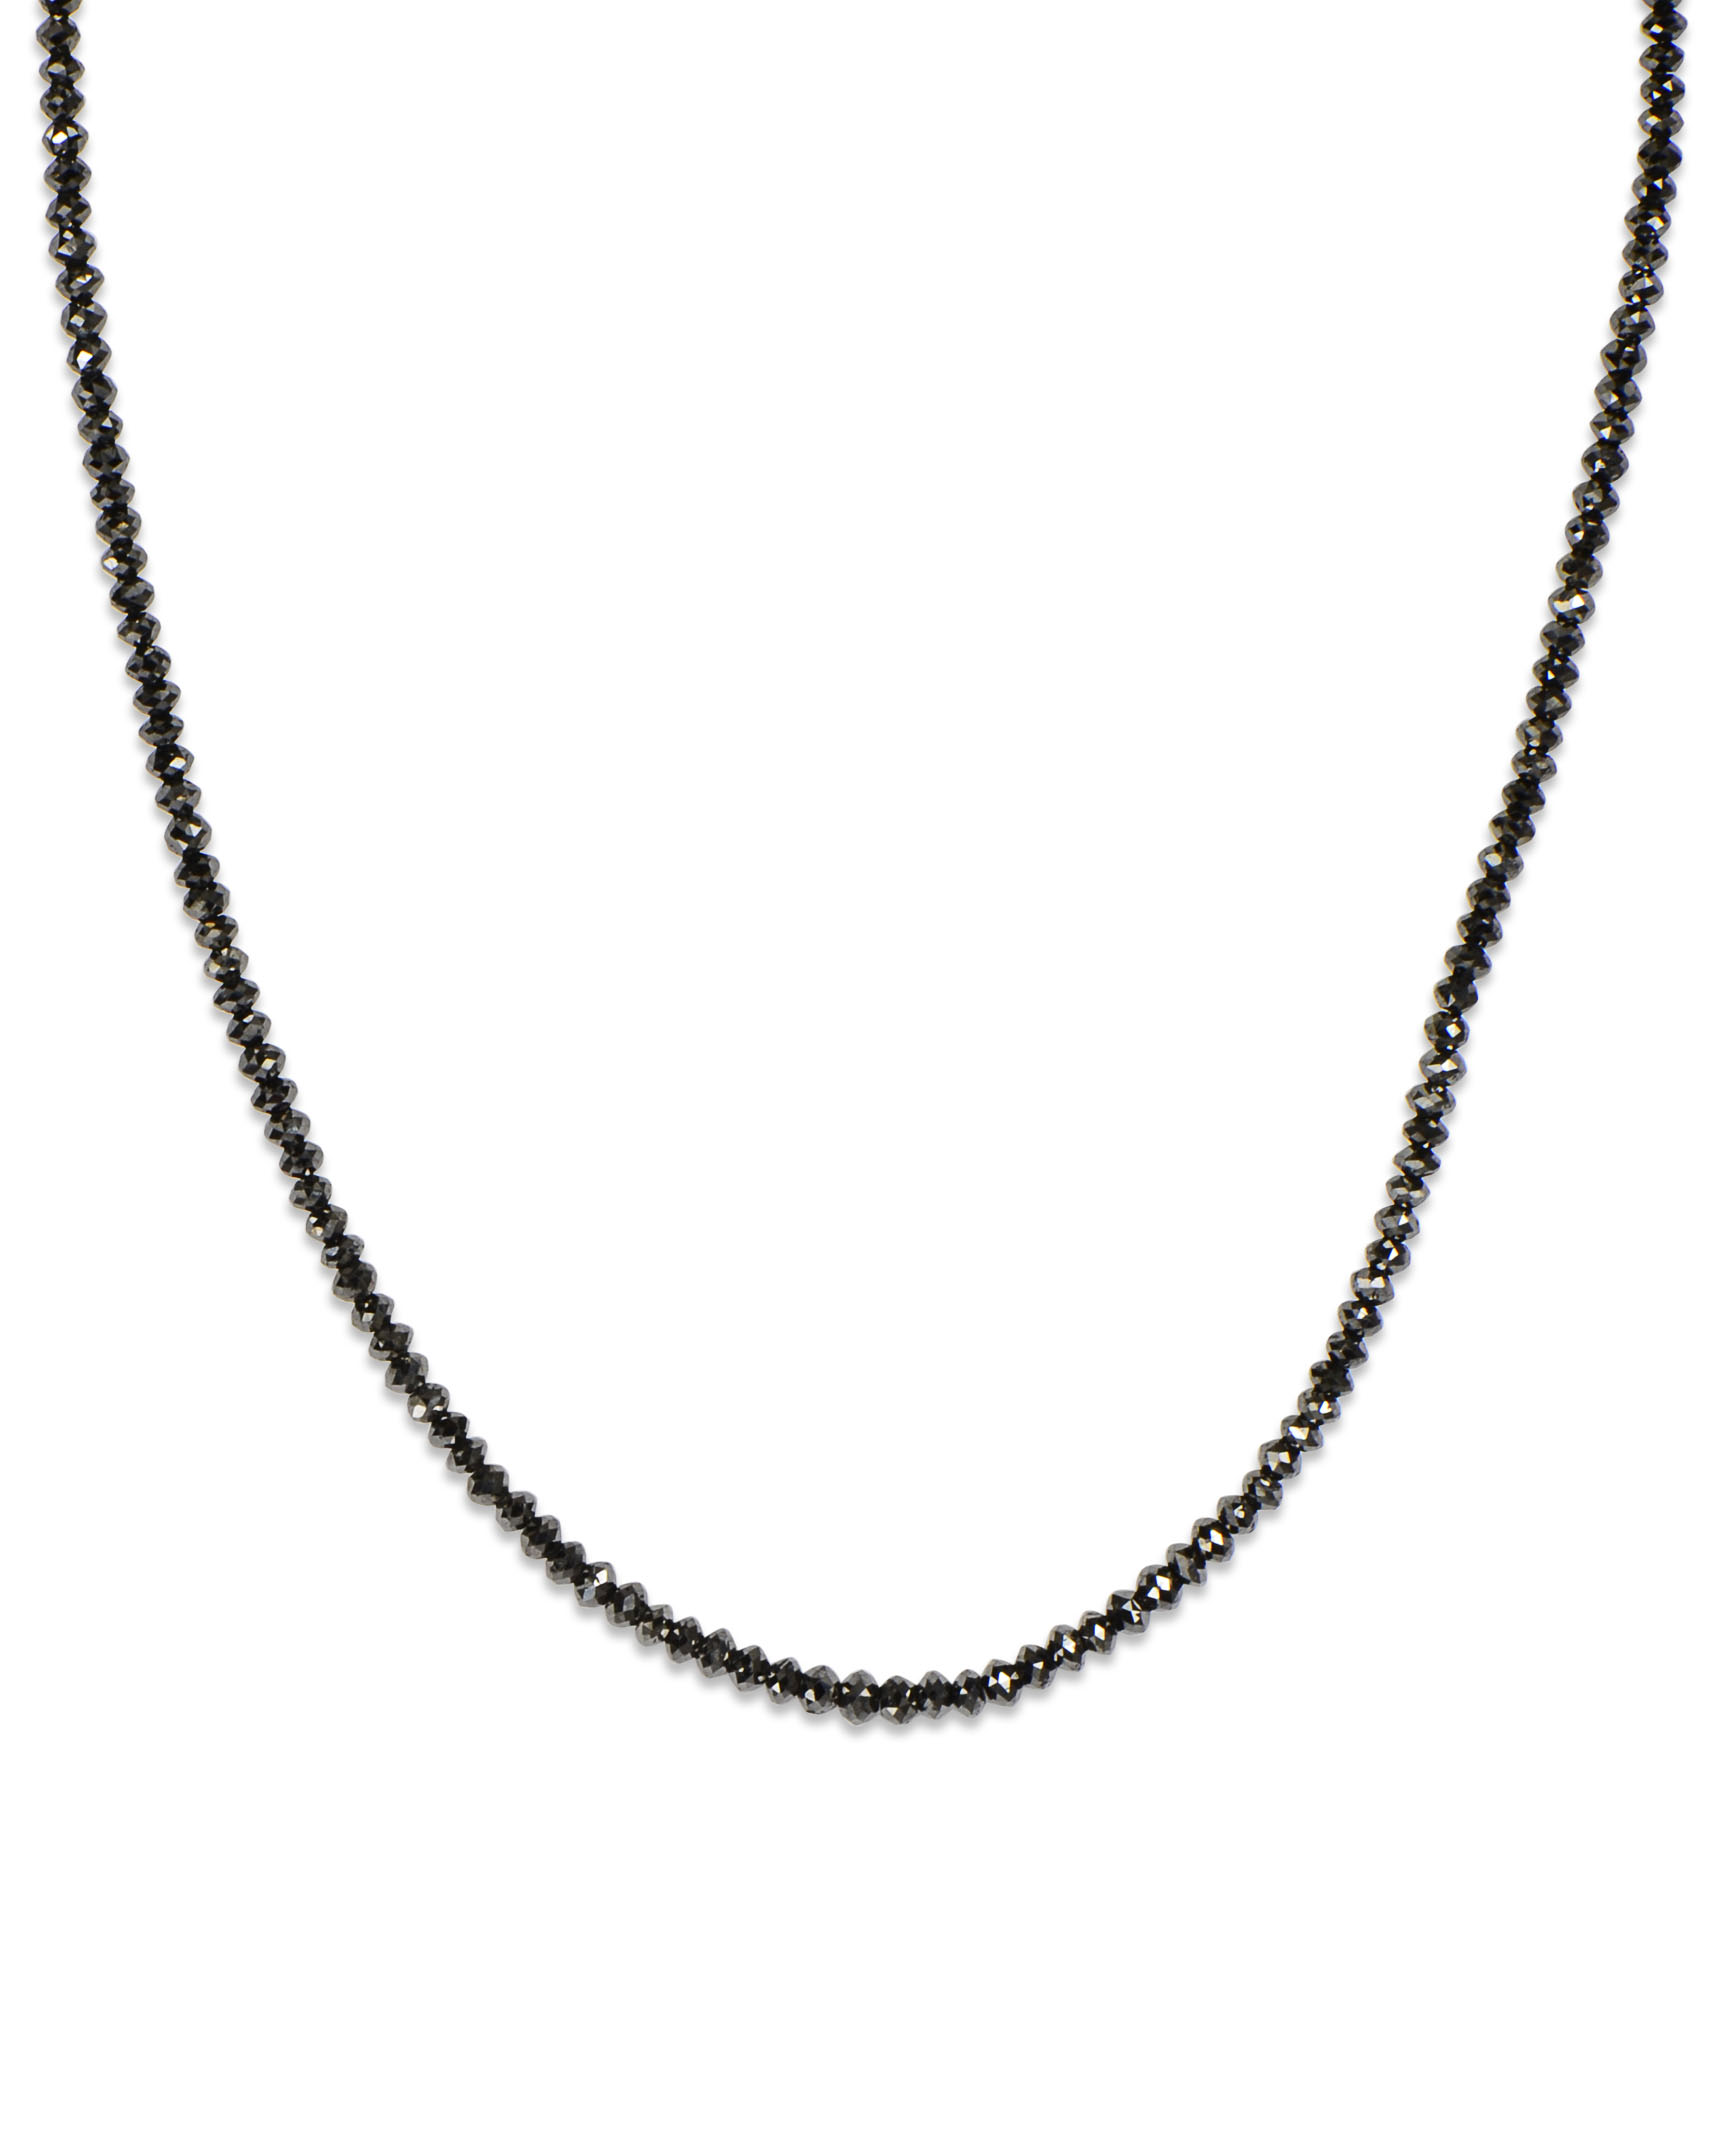 diamond linea bario black necklace pendant neal